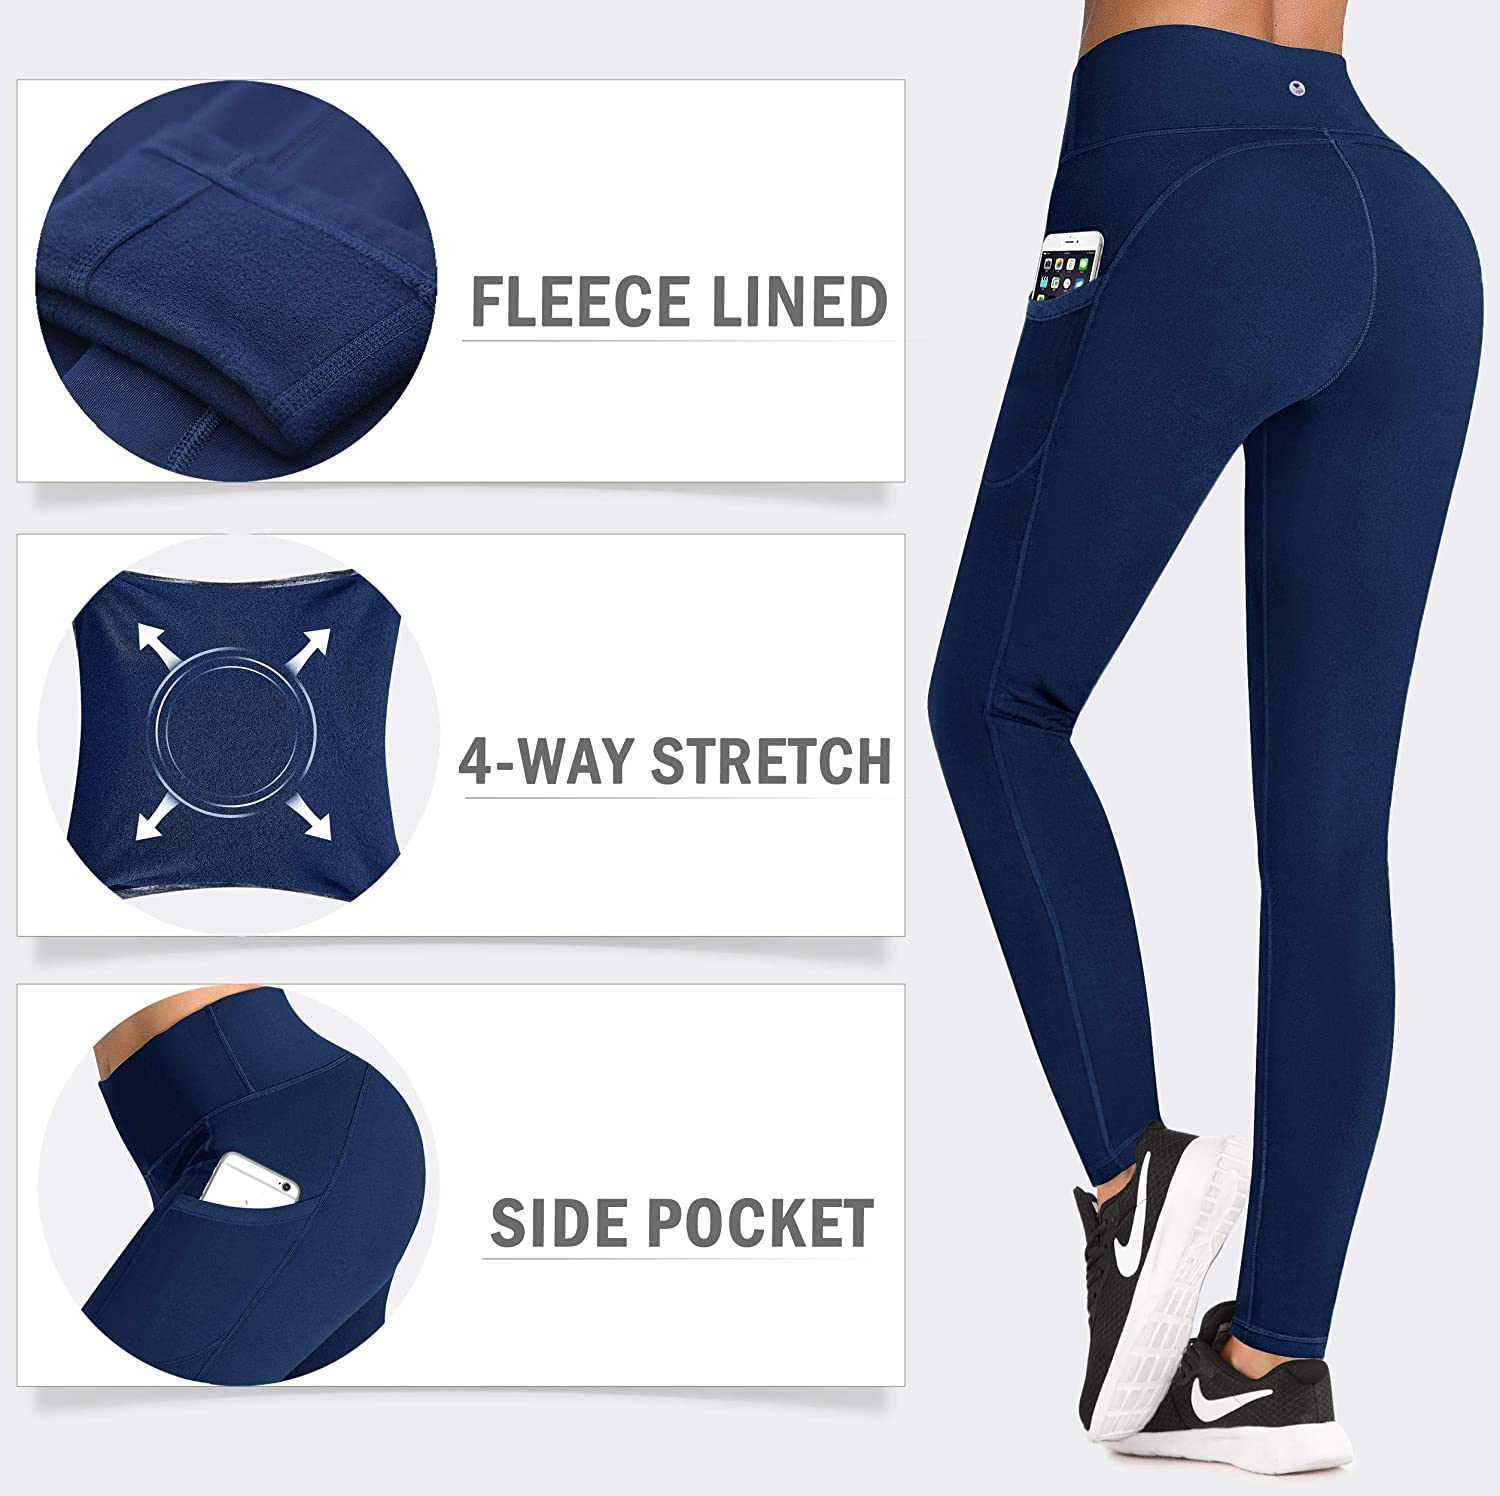 High Waisted Thermal Leggings with Pockets IUGA Fleece Lined Yoga Pants with Pockets for Women